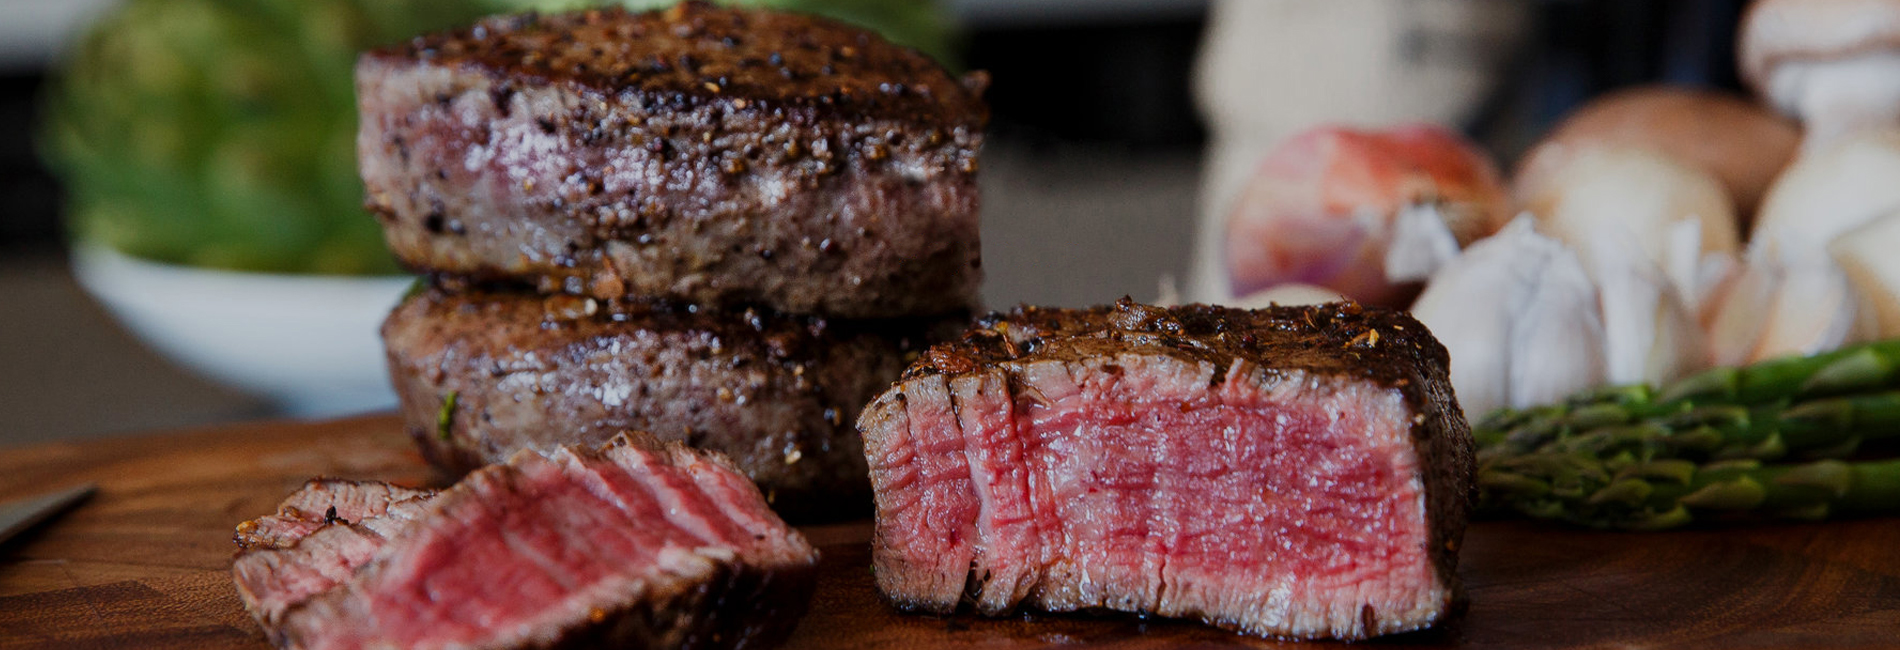 Buy Filet Mignon Prime Online